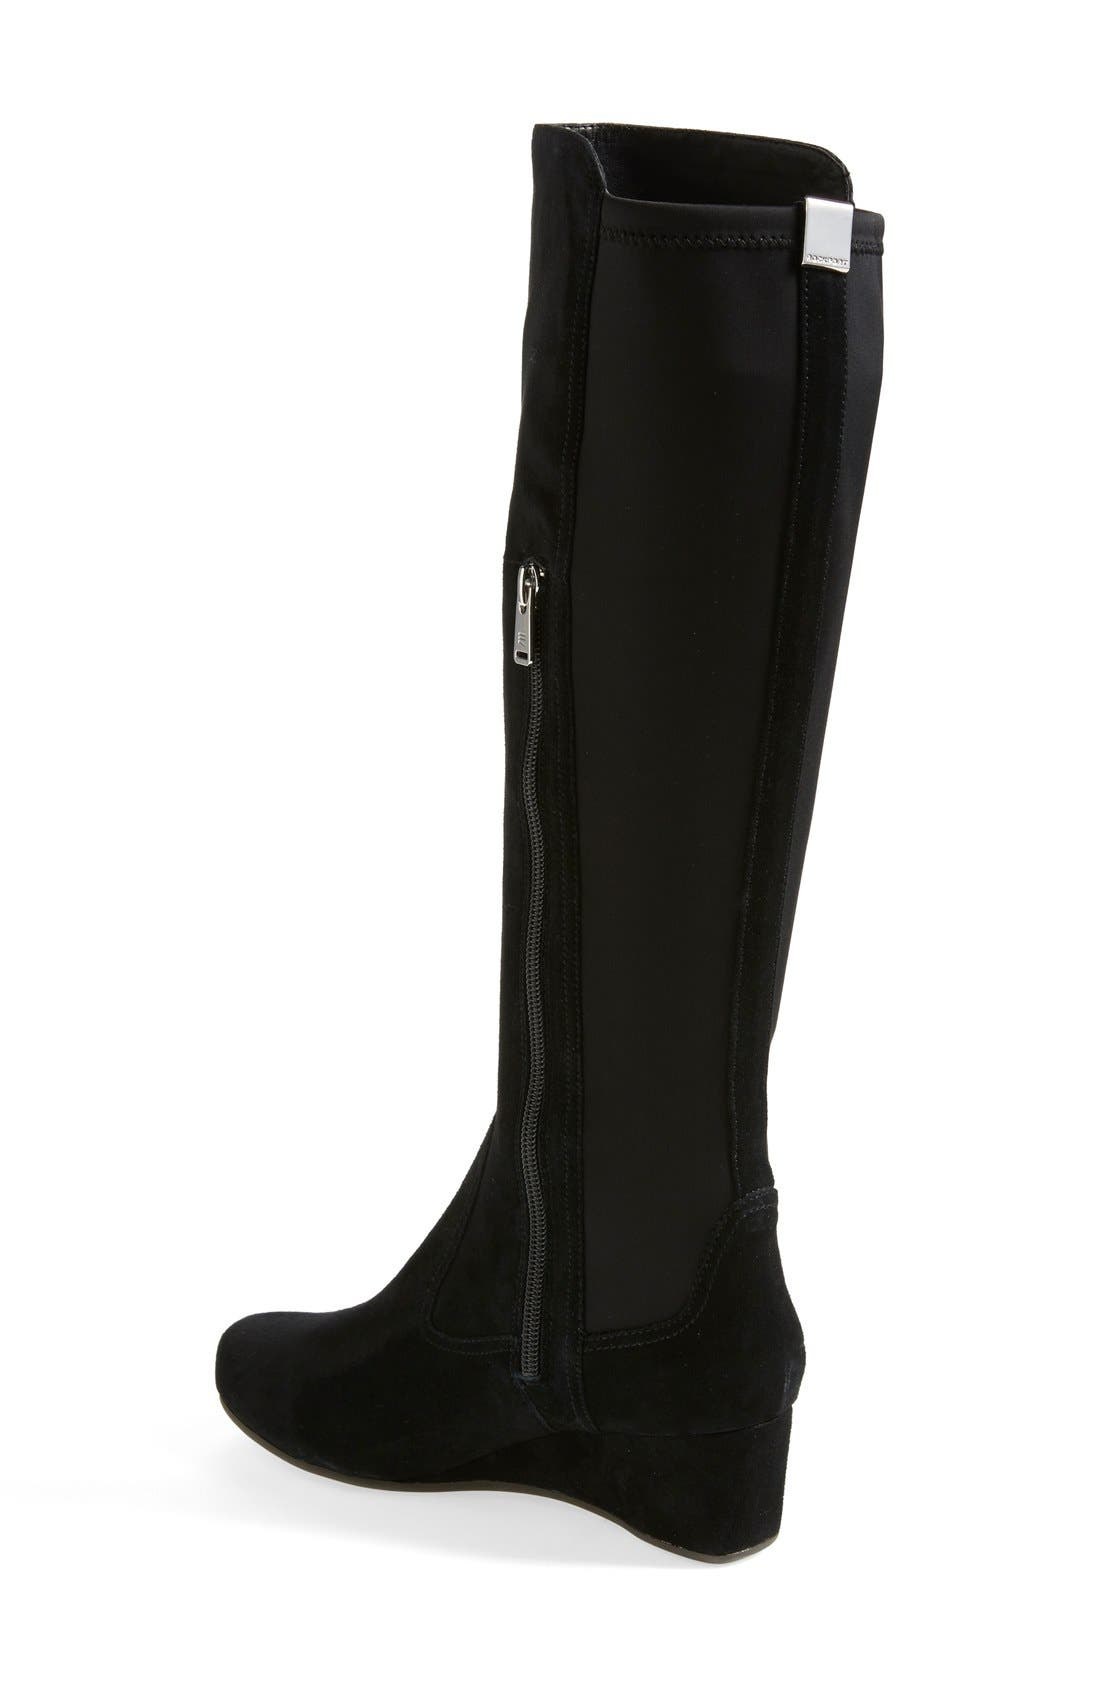 Alternate Image 2  - Rockport 'Total Motion' Suede Boot (Wide Calf) (Women)